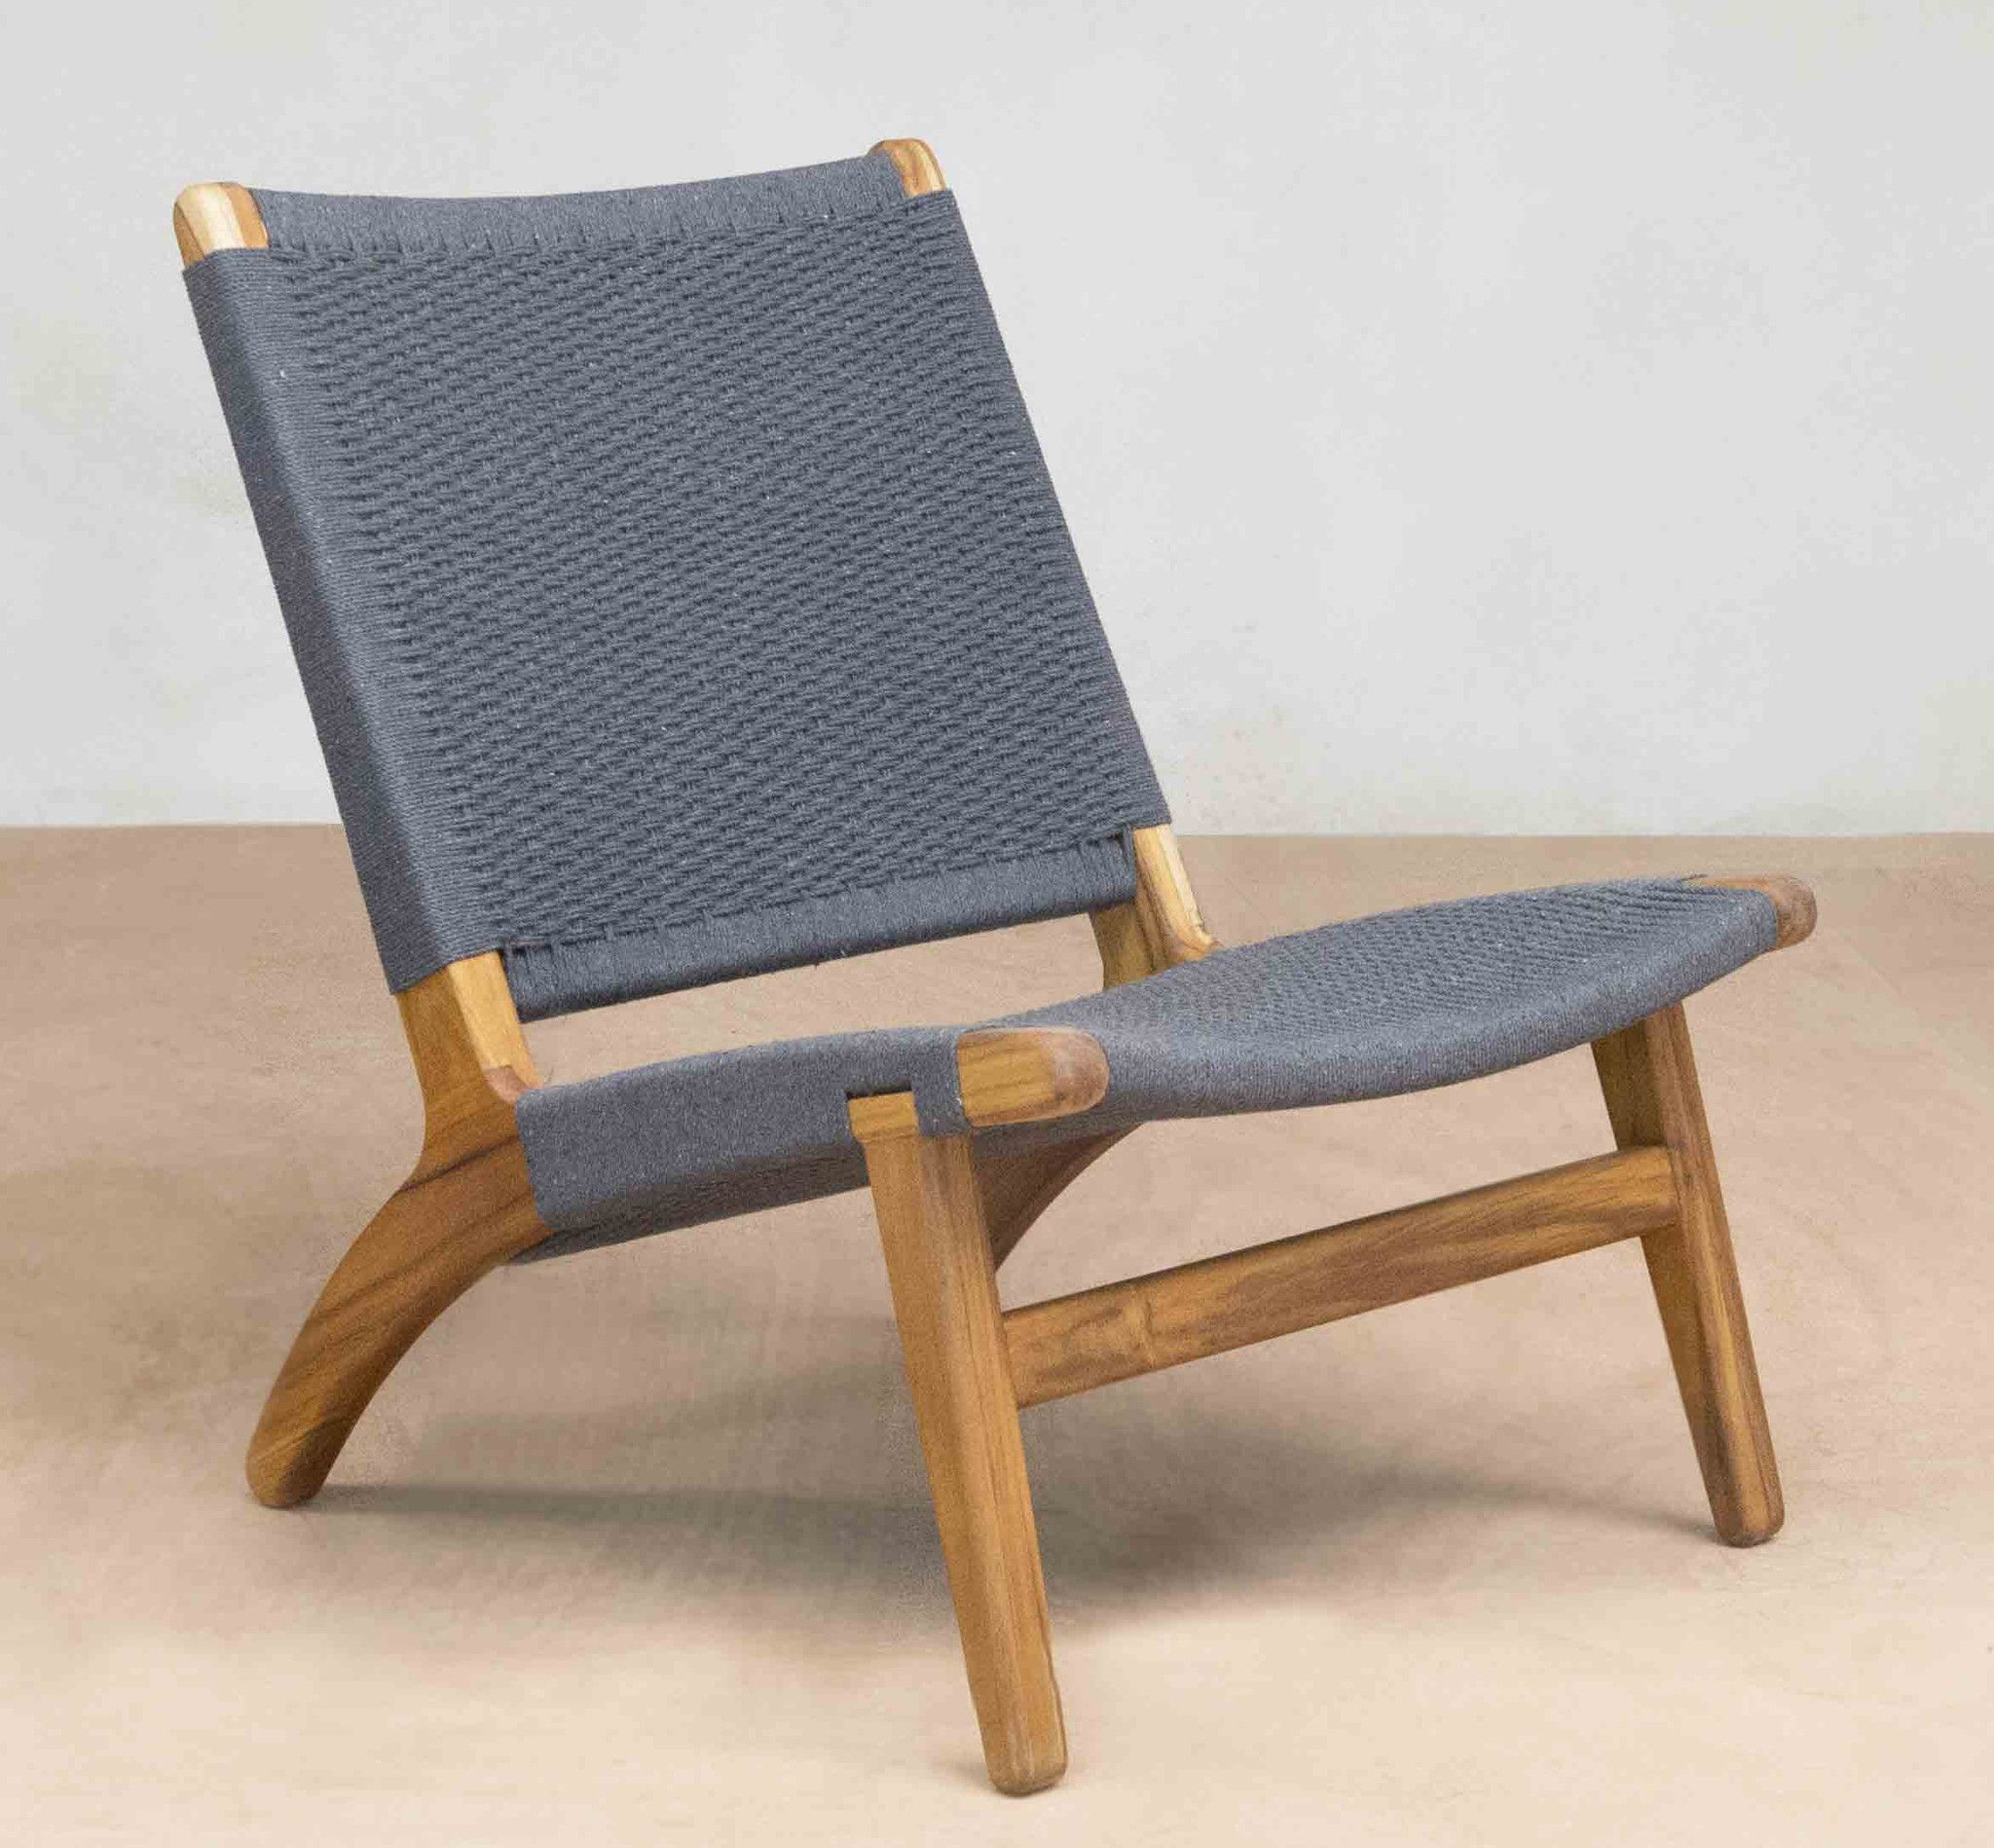 Modern lounge chair with hand woven charcoal grey manila cotton seat and handmade sustainably harvested hardwood frame a stylish modern living room chair